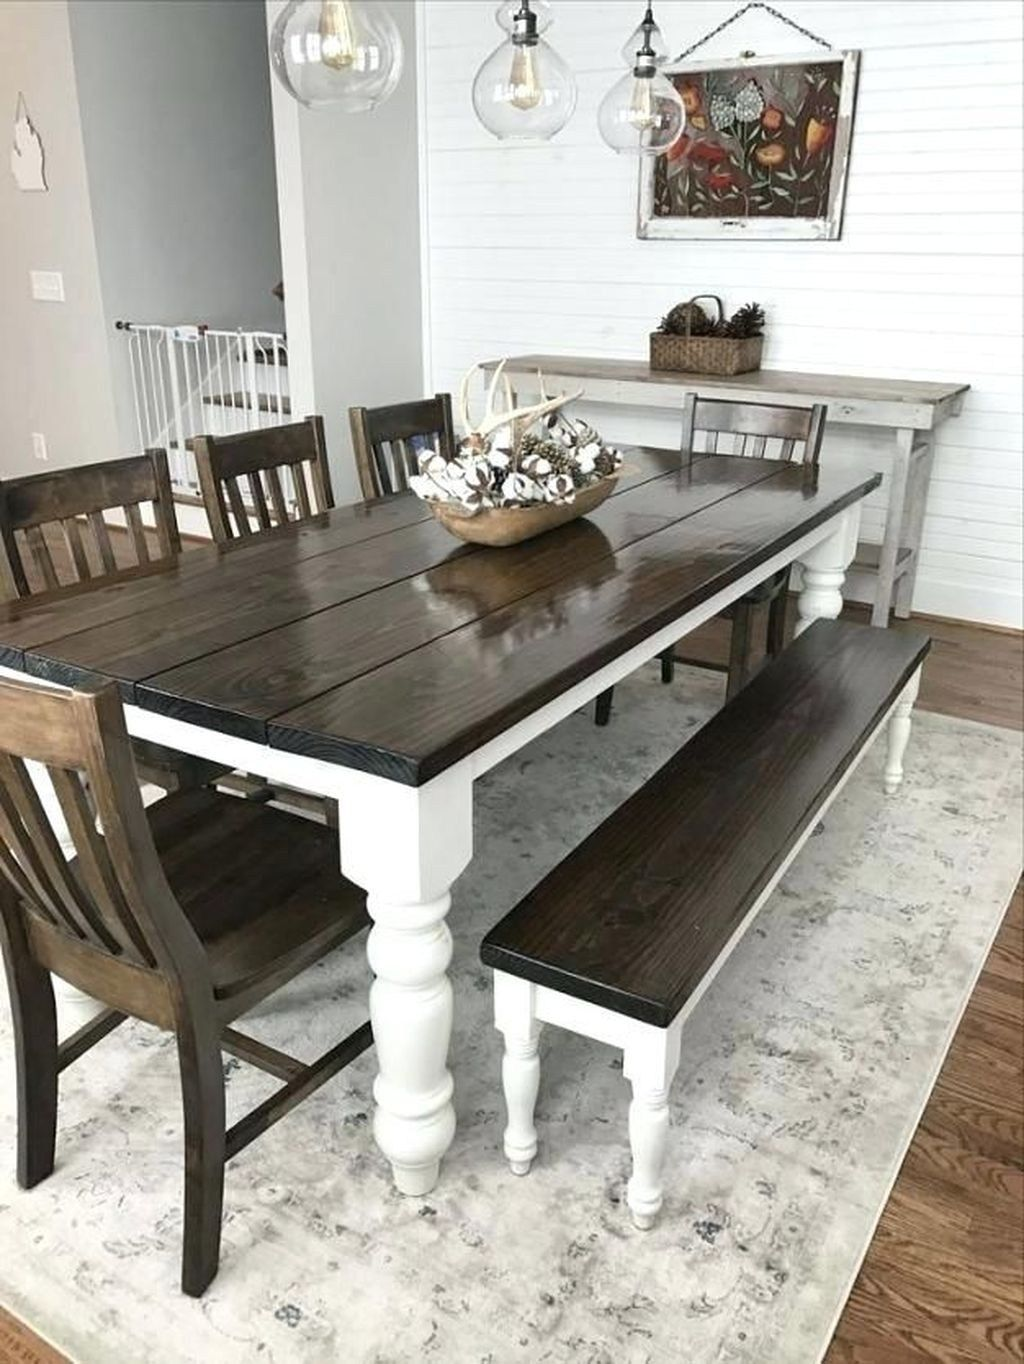 Popular Rustic Farmhouse Style Ideas For Dining Room Decor 10